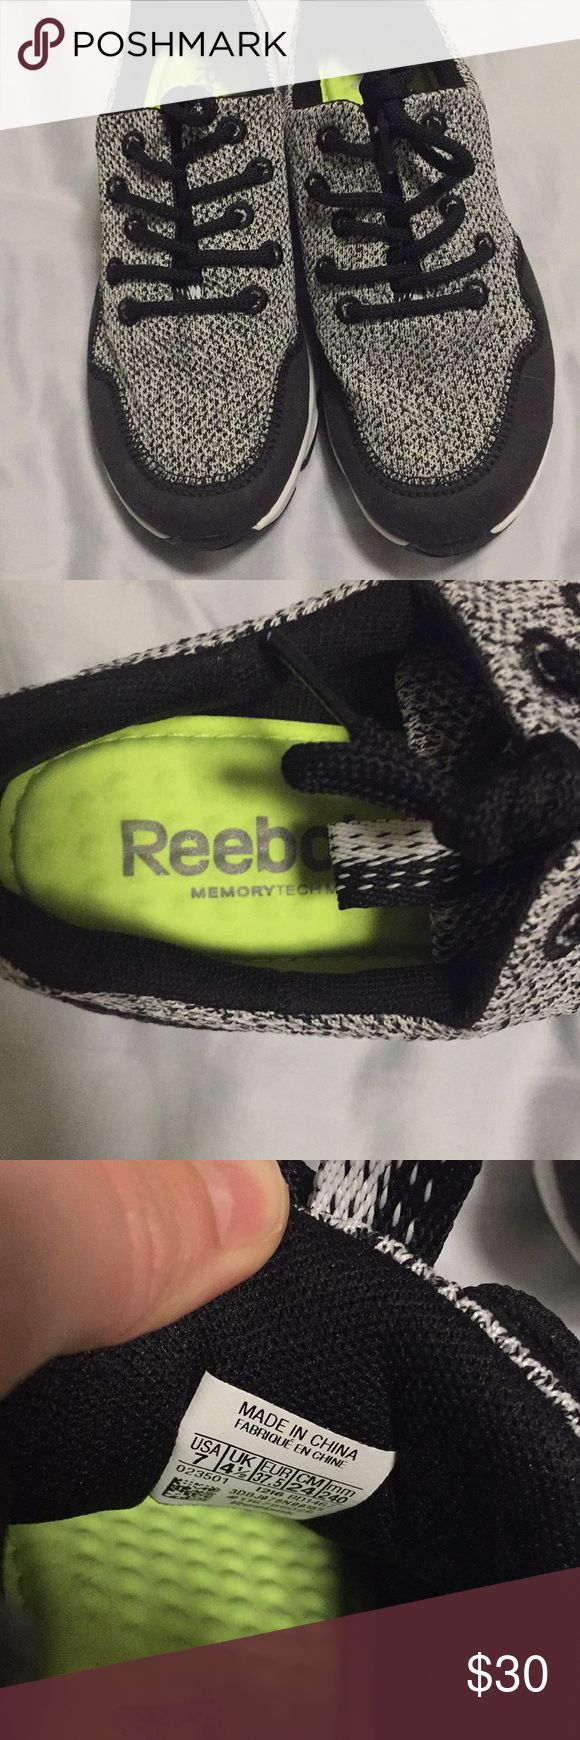 Reebok Memory Foam Knit Gym Shoe Size 7 Worn twice Amazing condition Shoes Sneakers